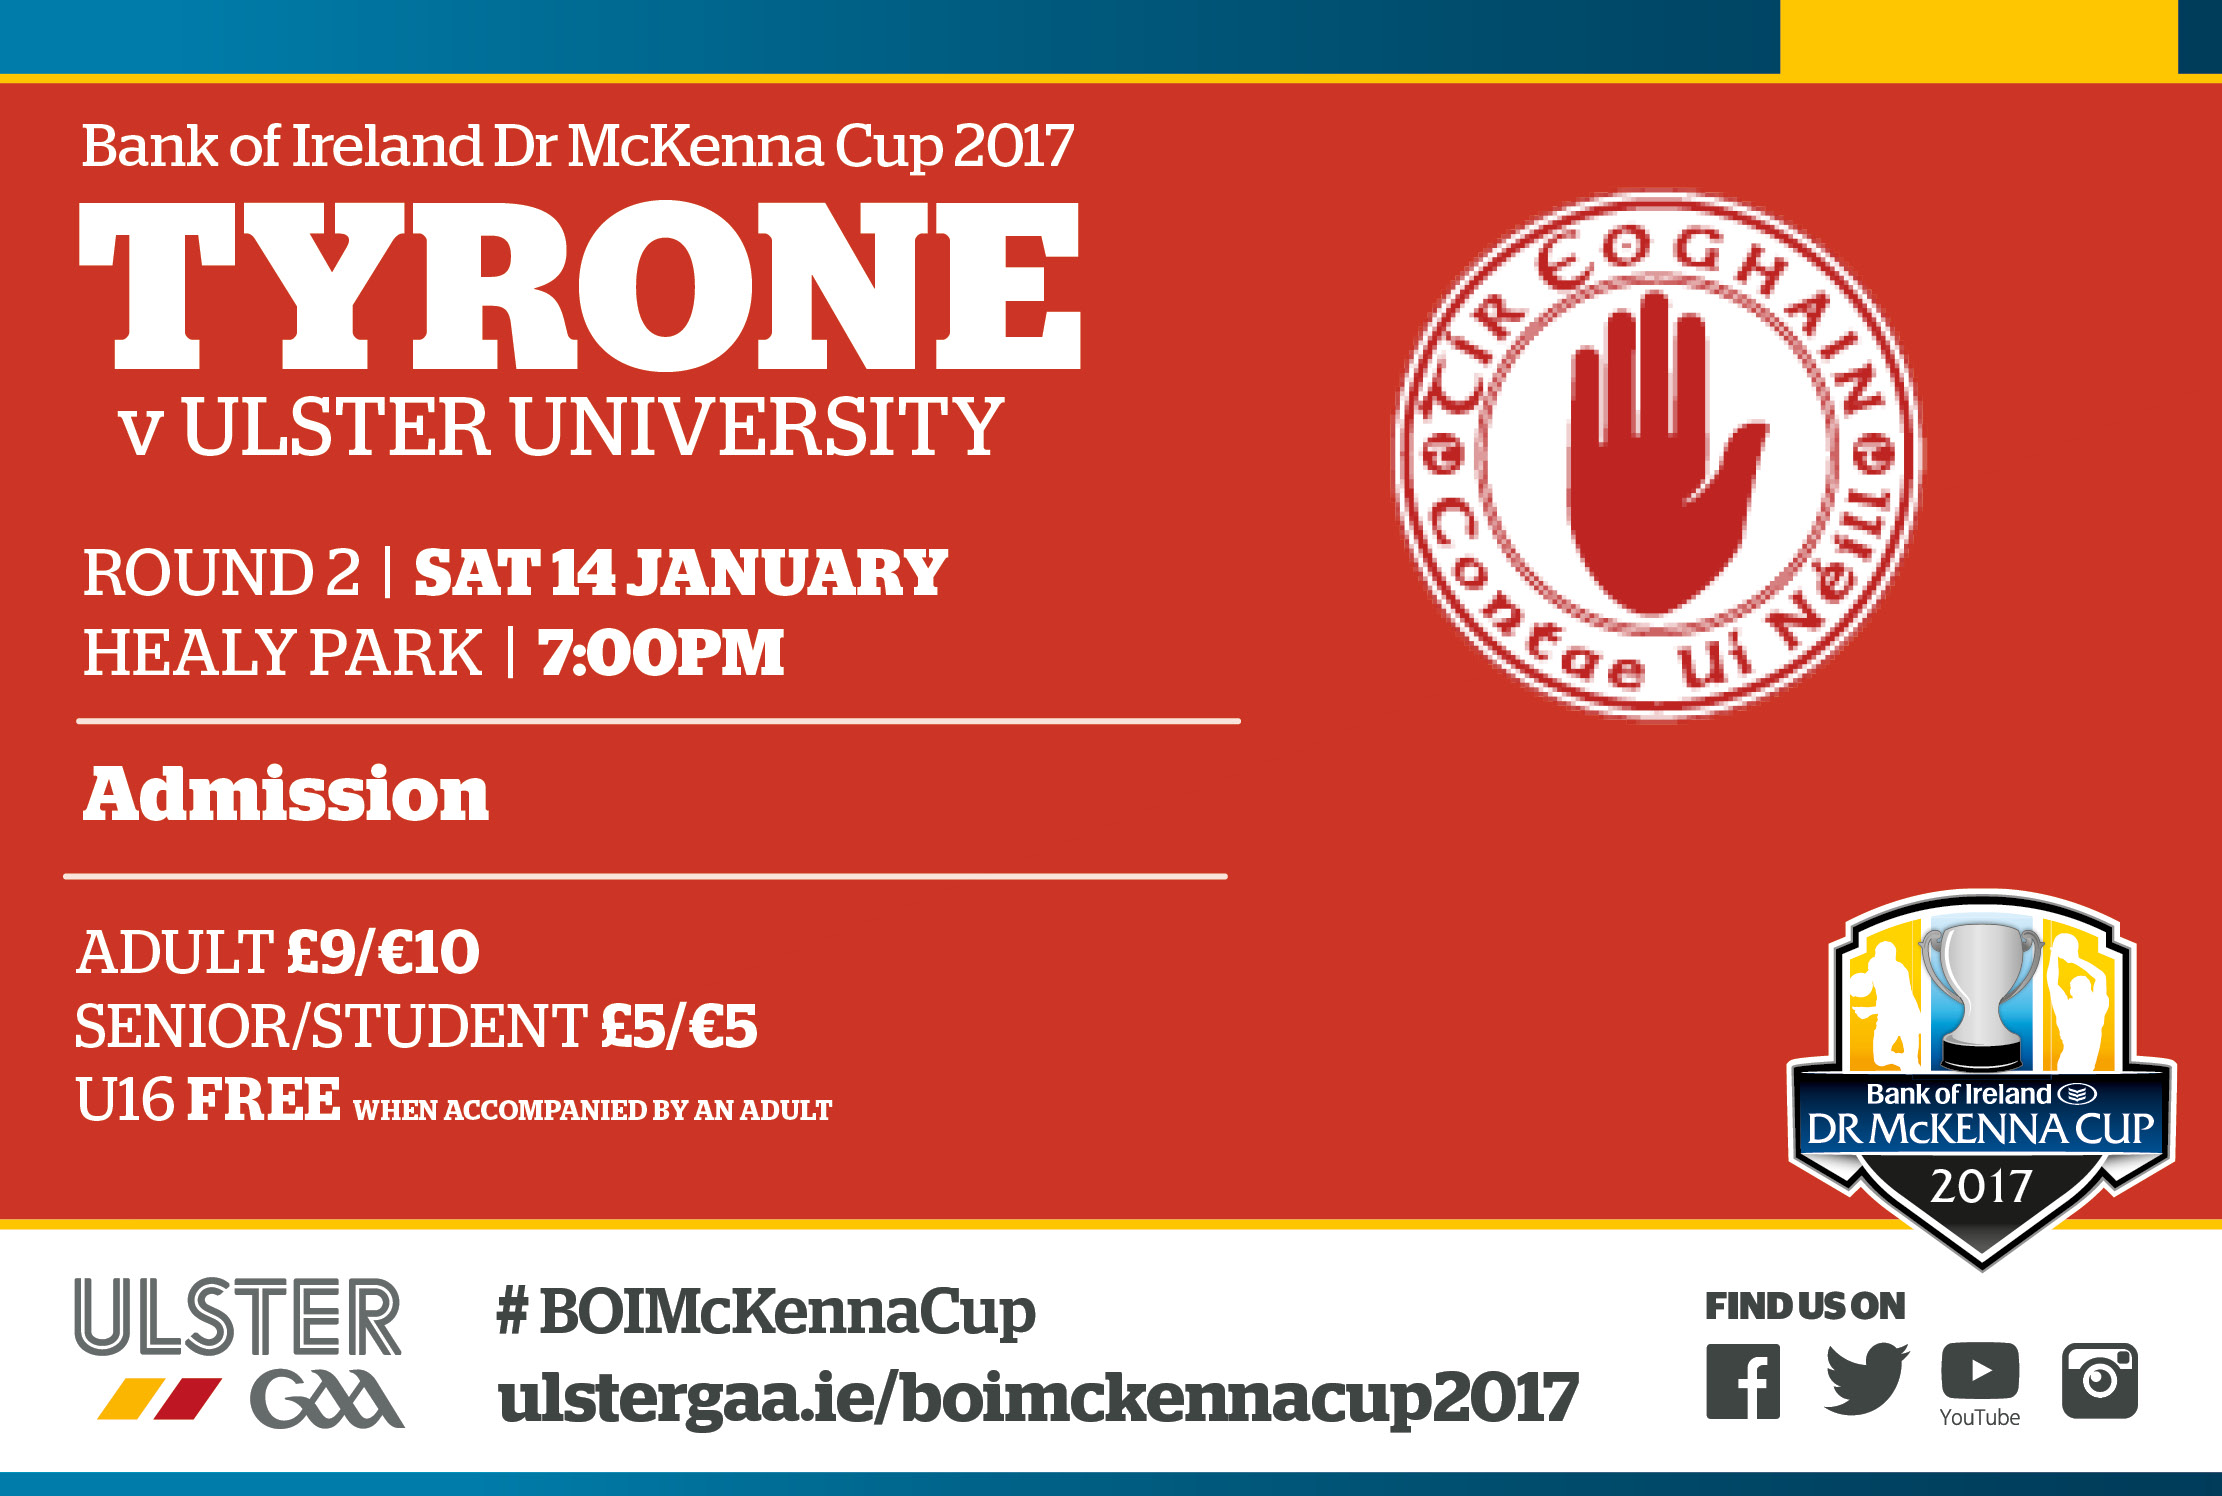 Tyrone team v Ulster University 14/1/17